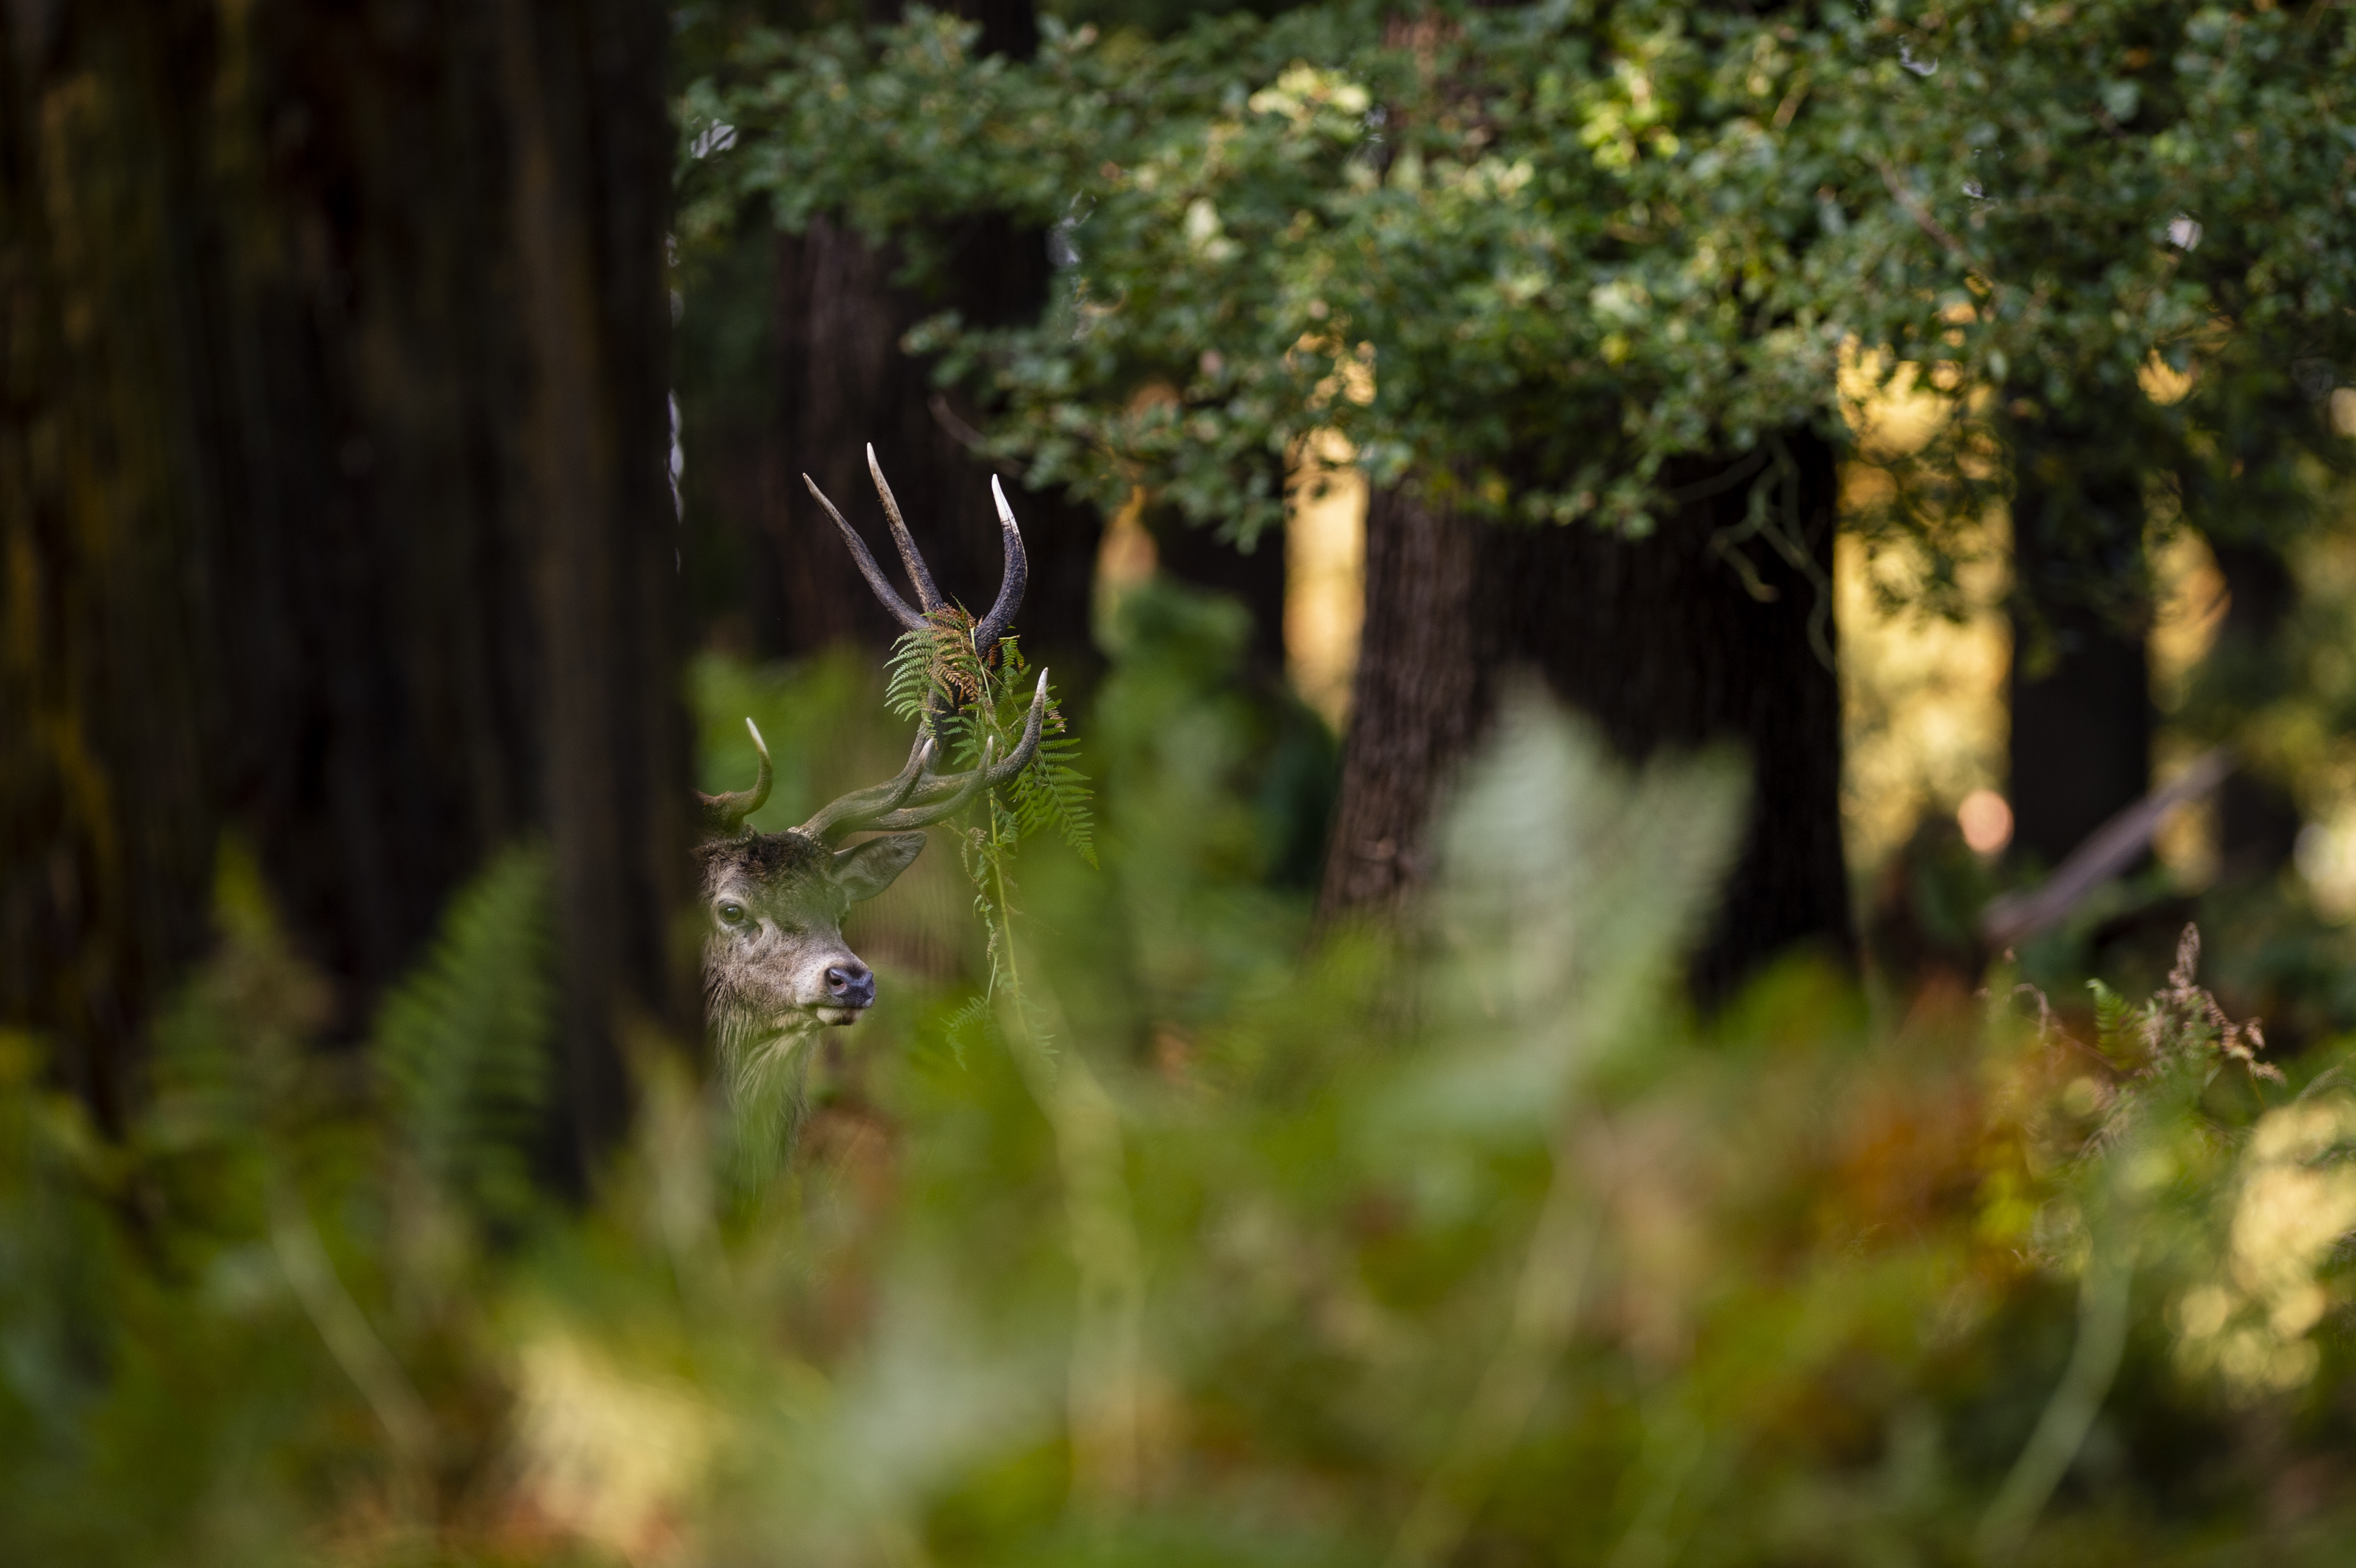 Deer in the foliage in Richmond Park, London